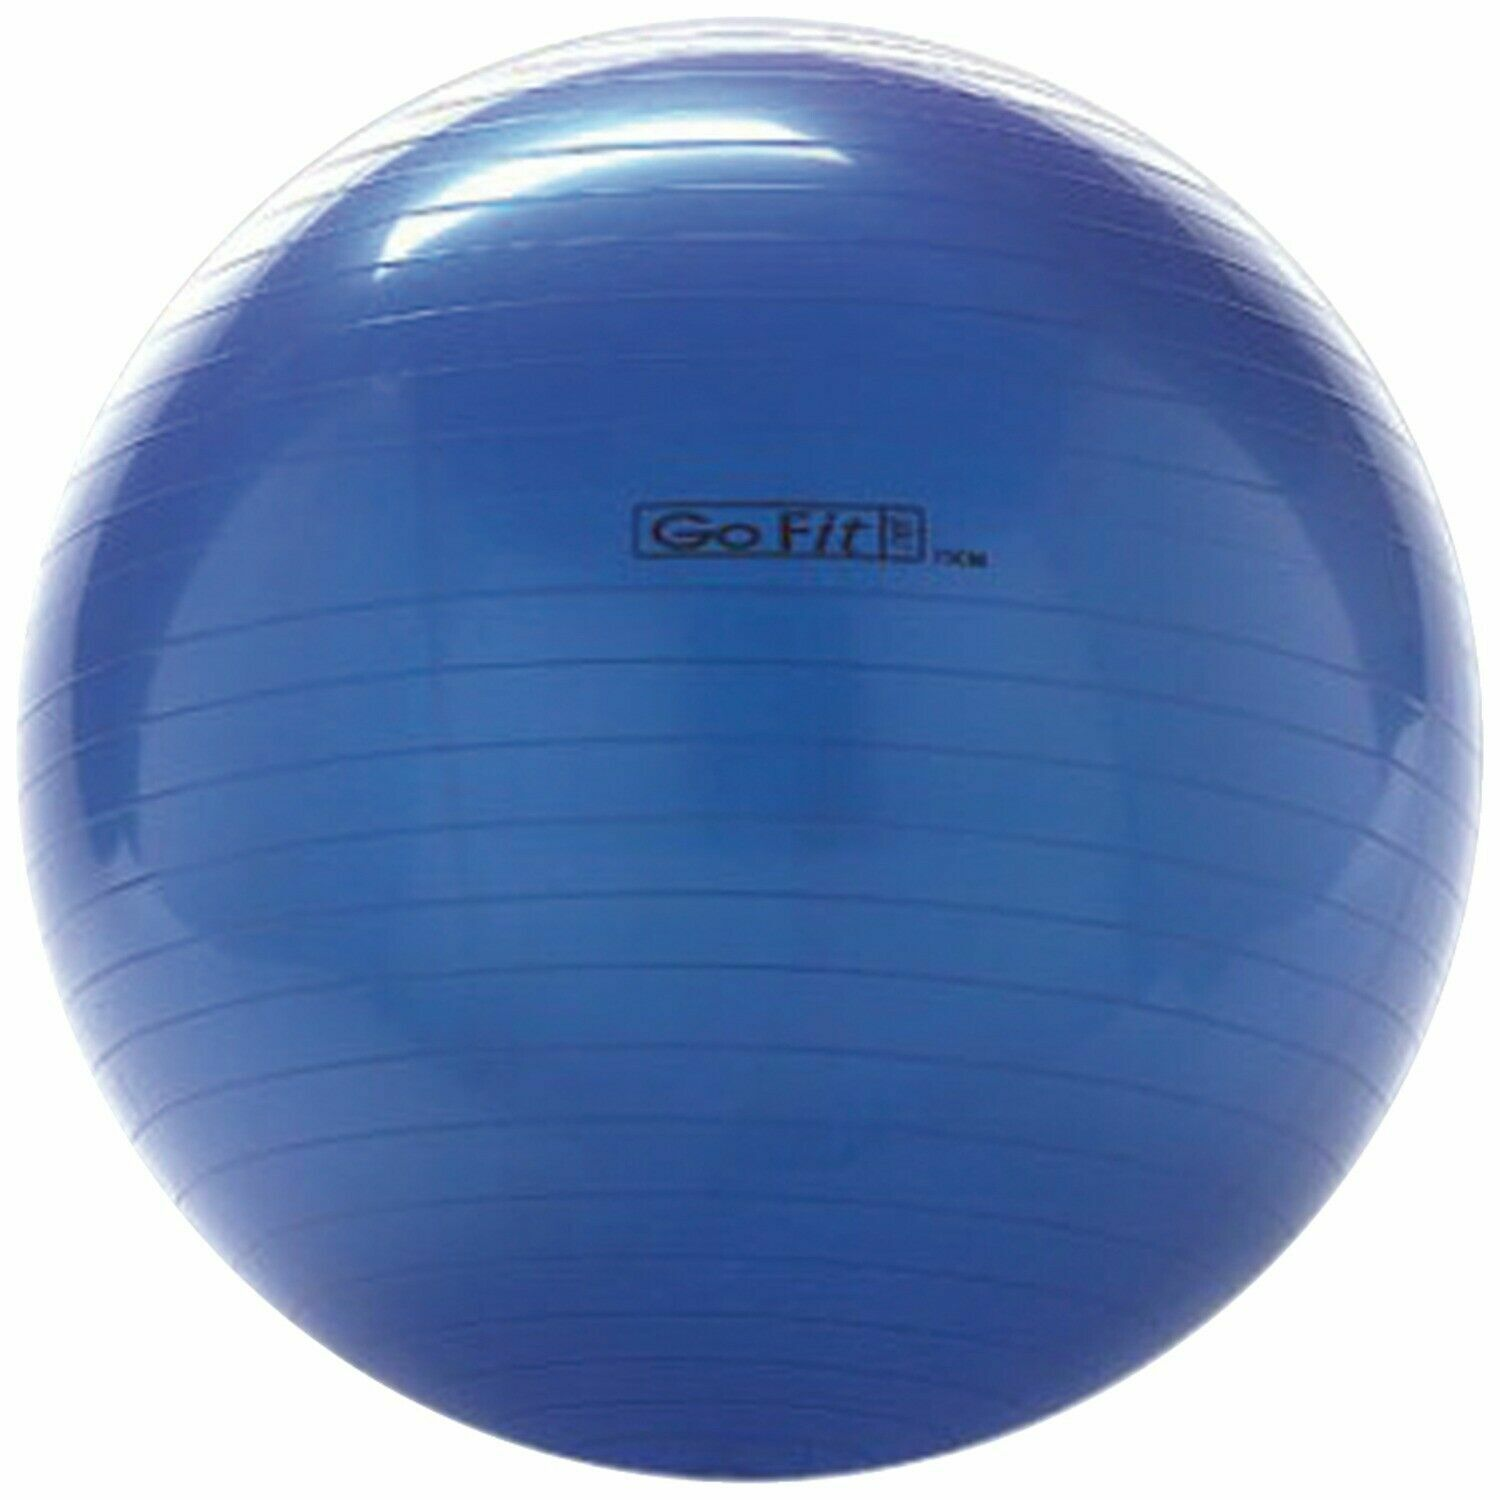 GOFIT GF-75BALL Exercise Ball with Pump